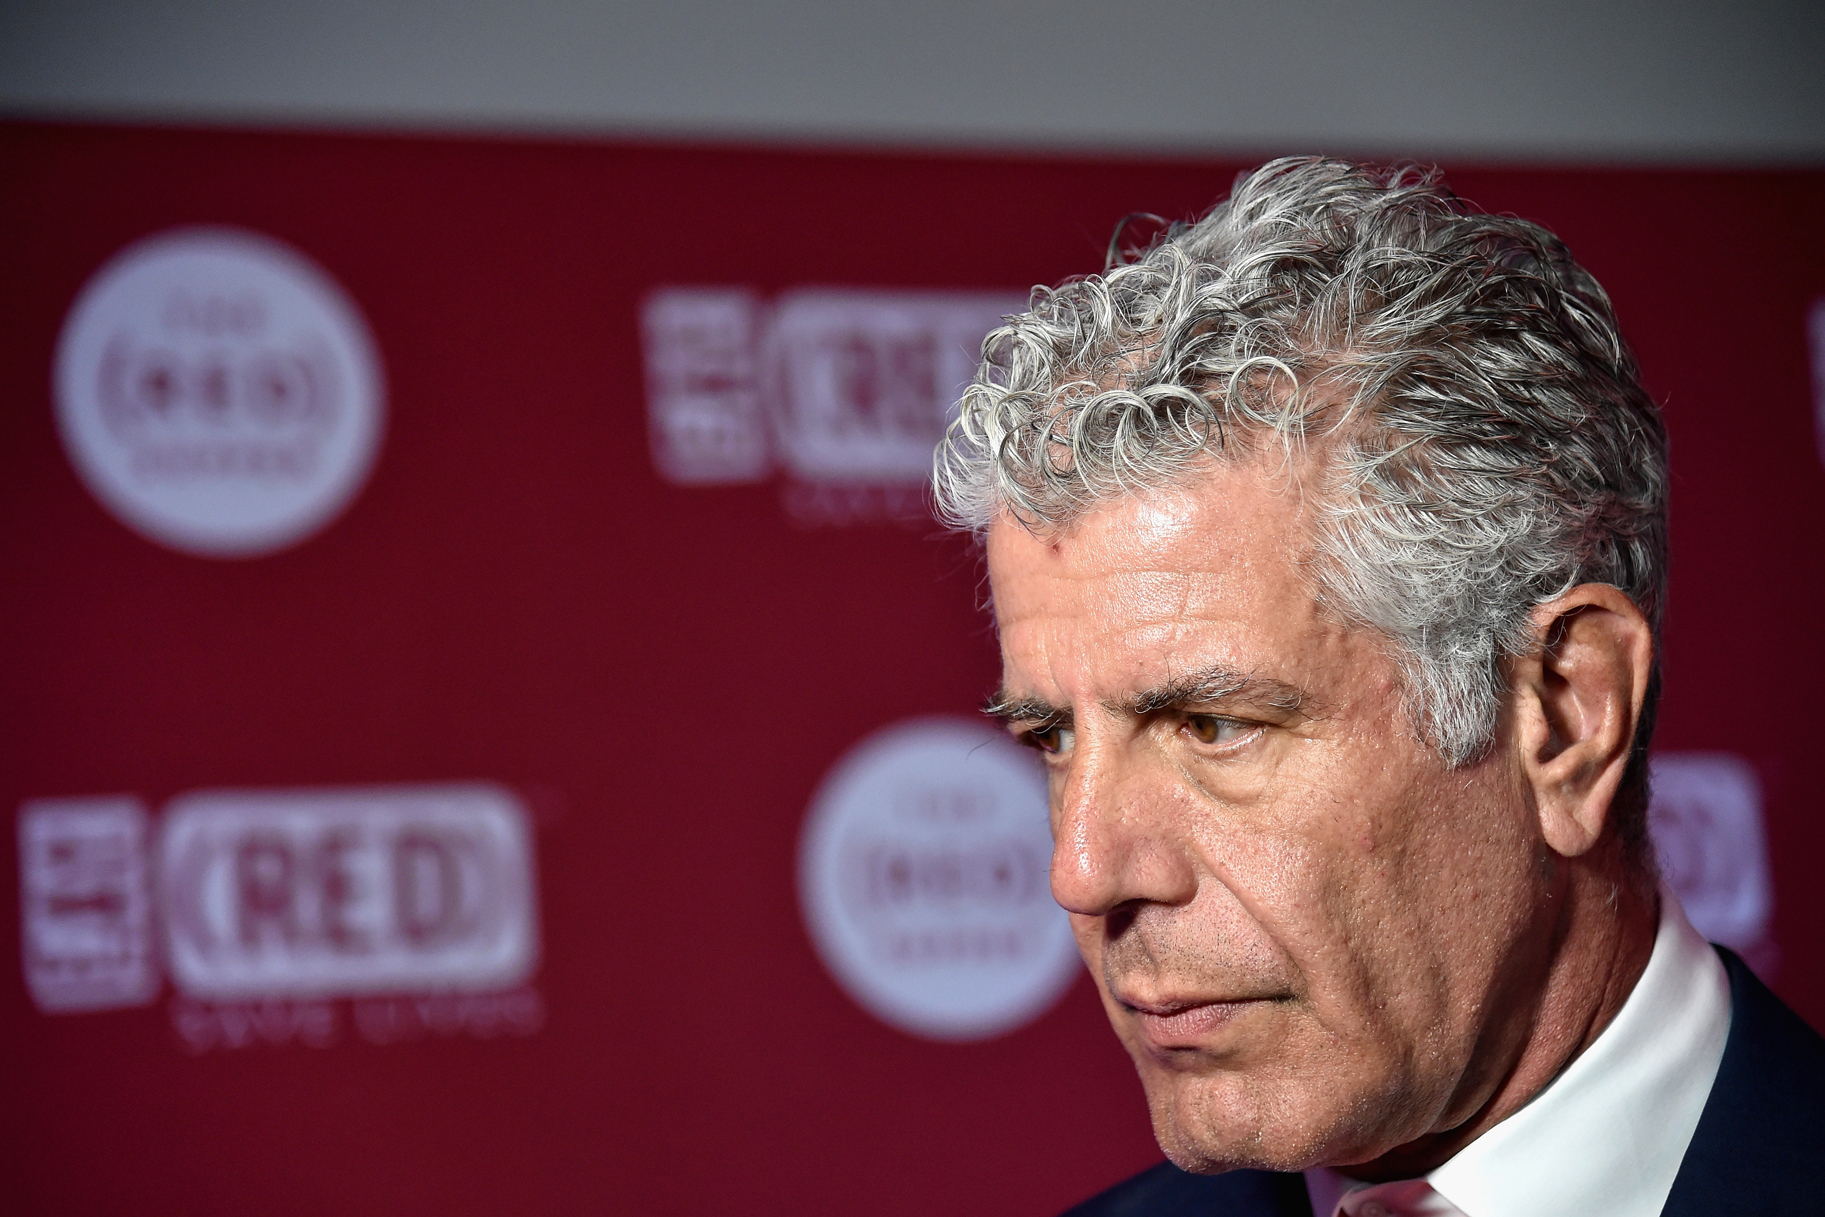 """Anthony Bourdain Ponders Life and Death in """"Ironic"""" Final Episode of Parts Unknown"""